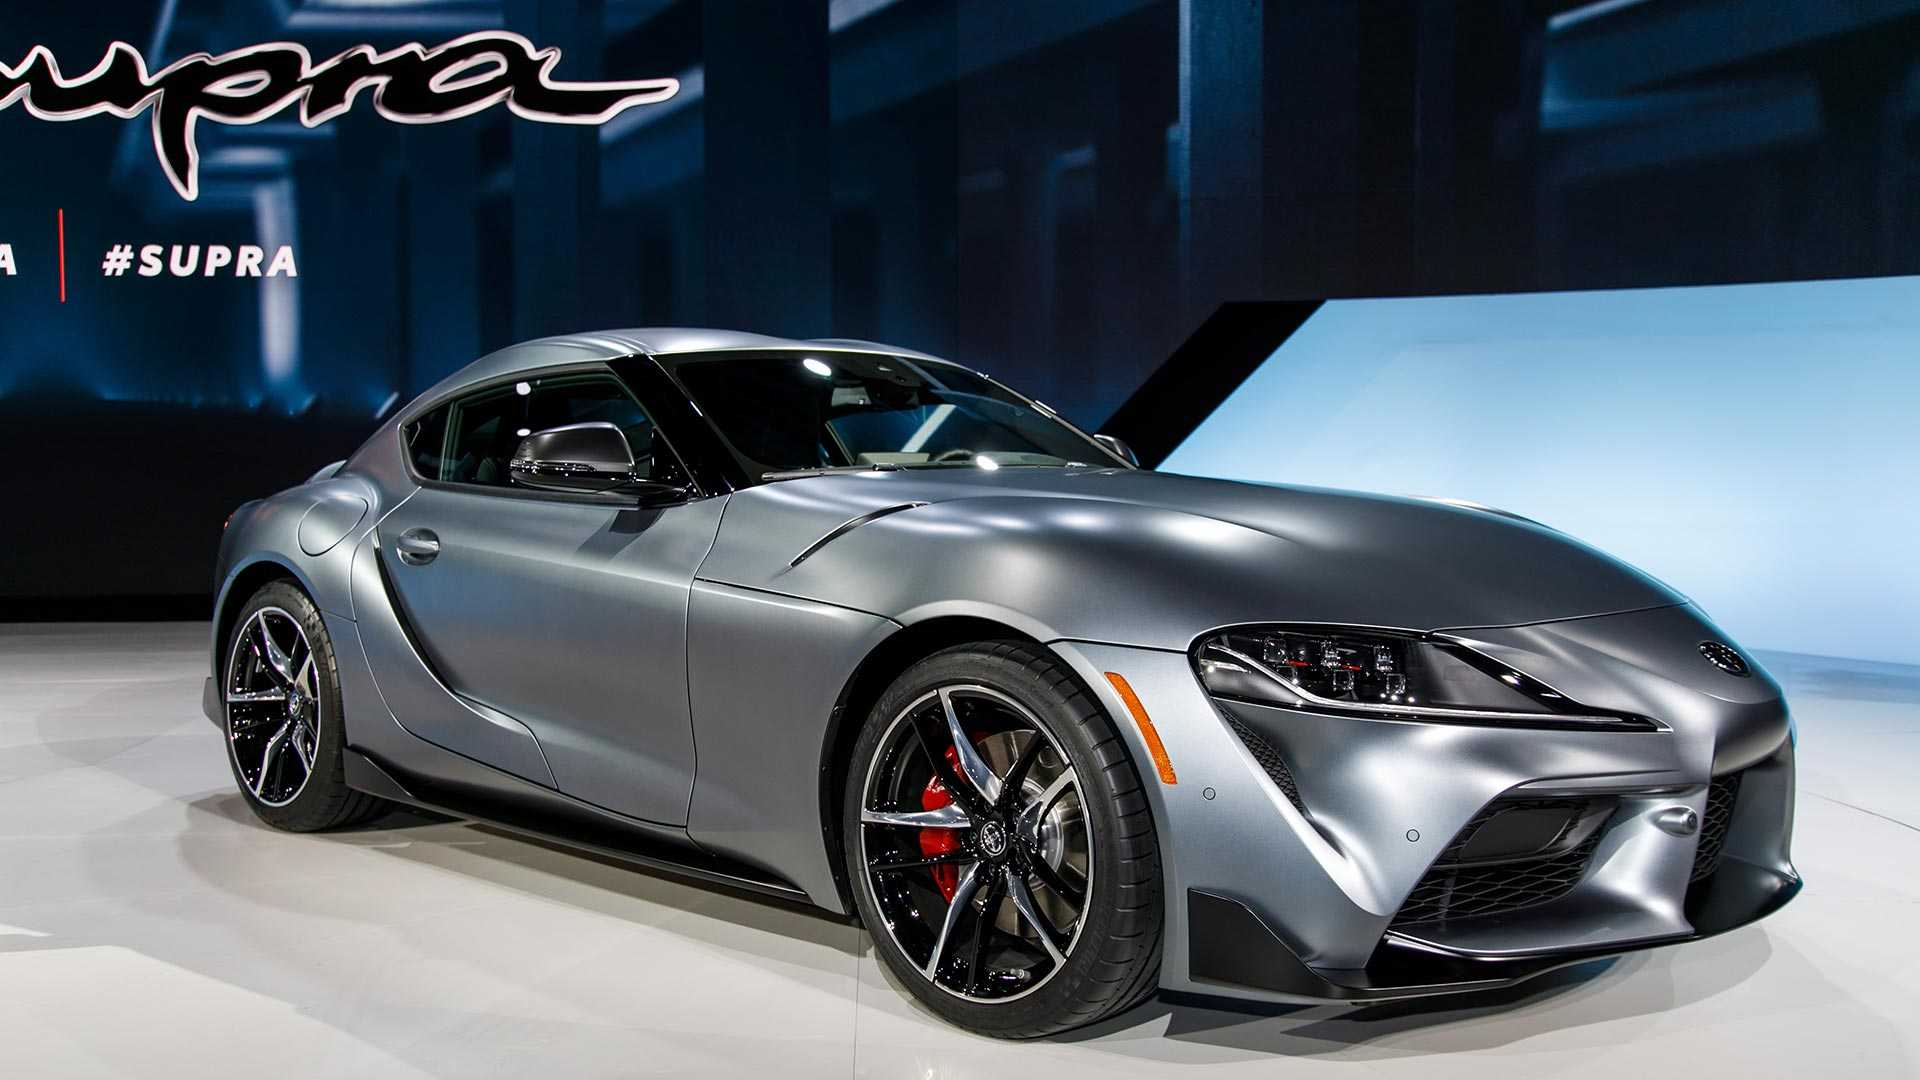 51 Best Images Of 2020 Toyota Supra Concept